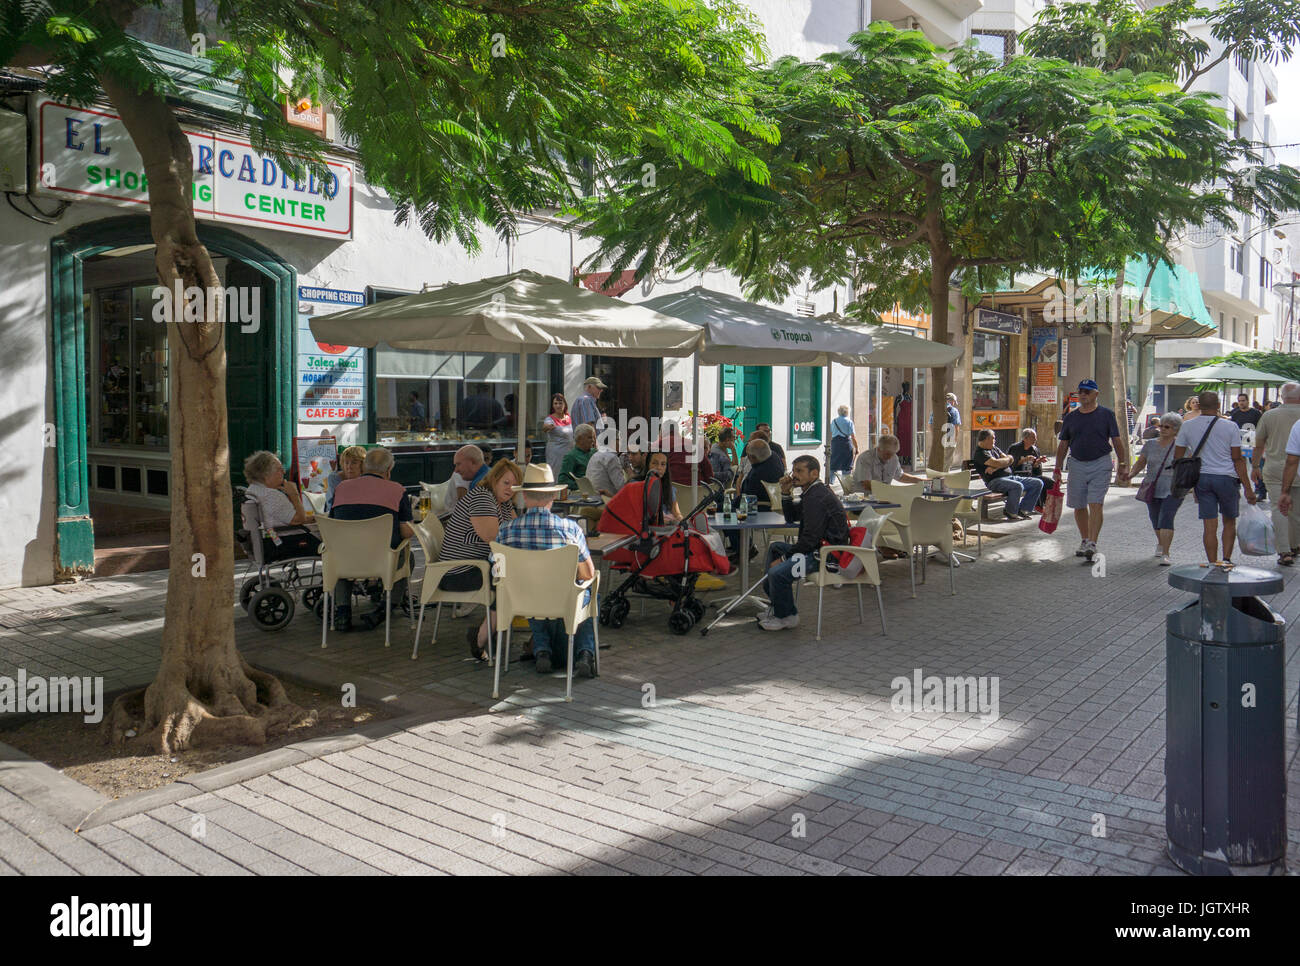 Gastronomy at the center of Arrecife, Lanzarote island, Canary islands, Spain, Europe - Stock Image